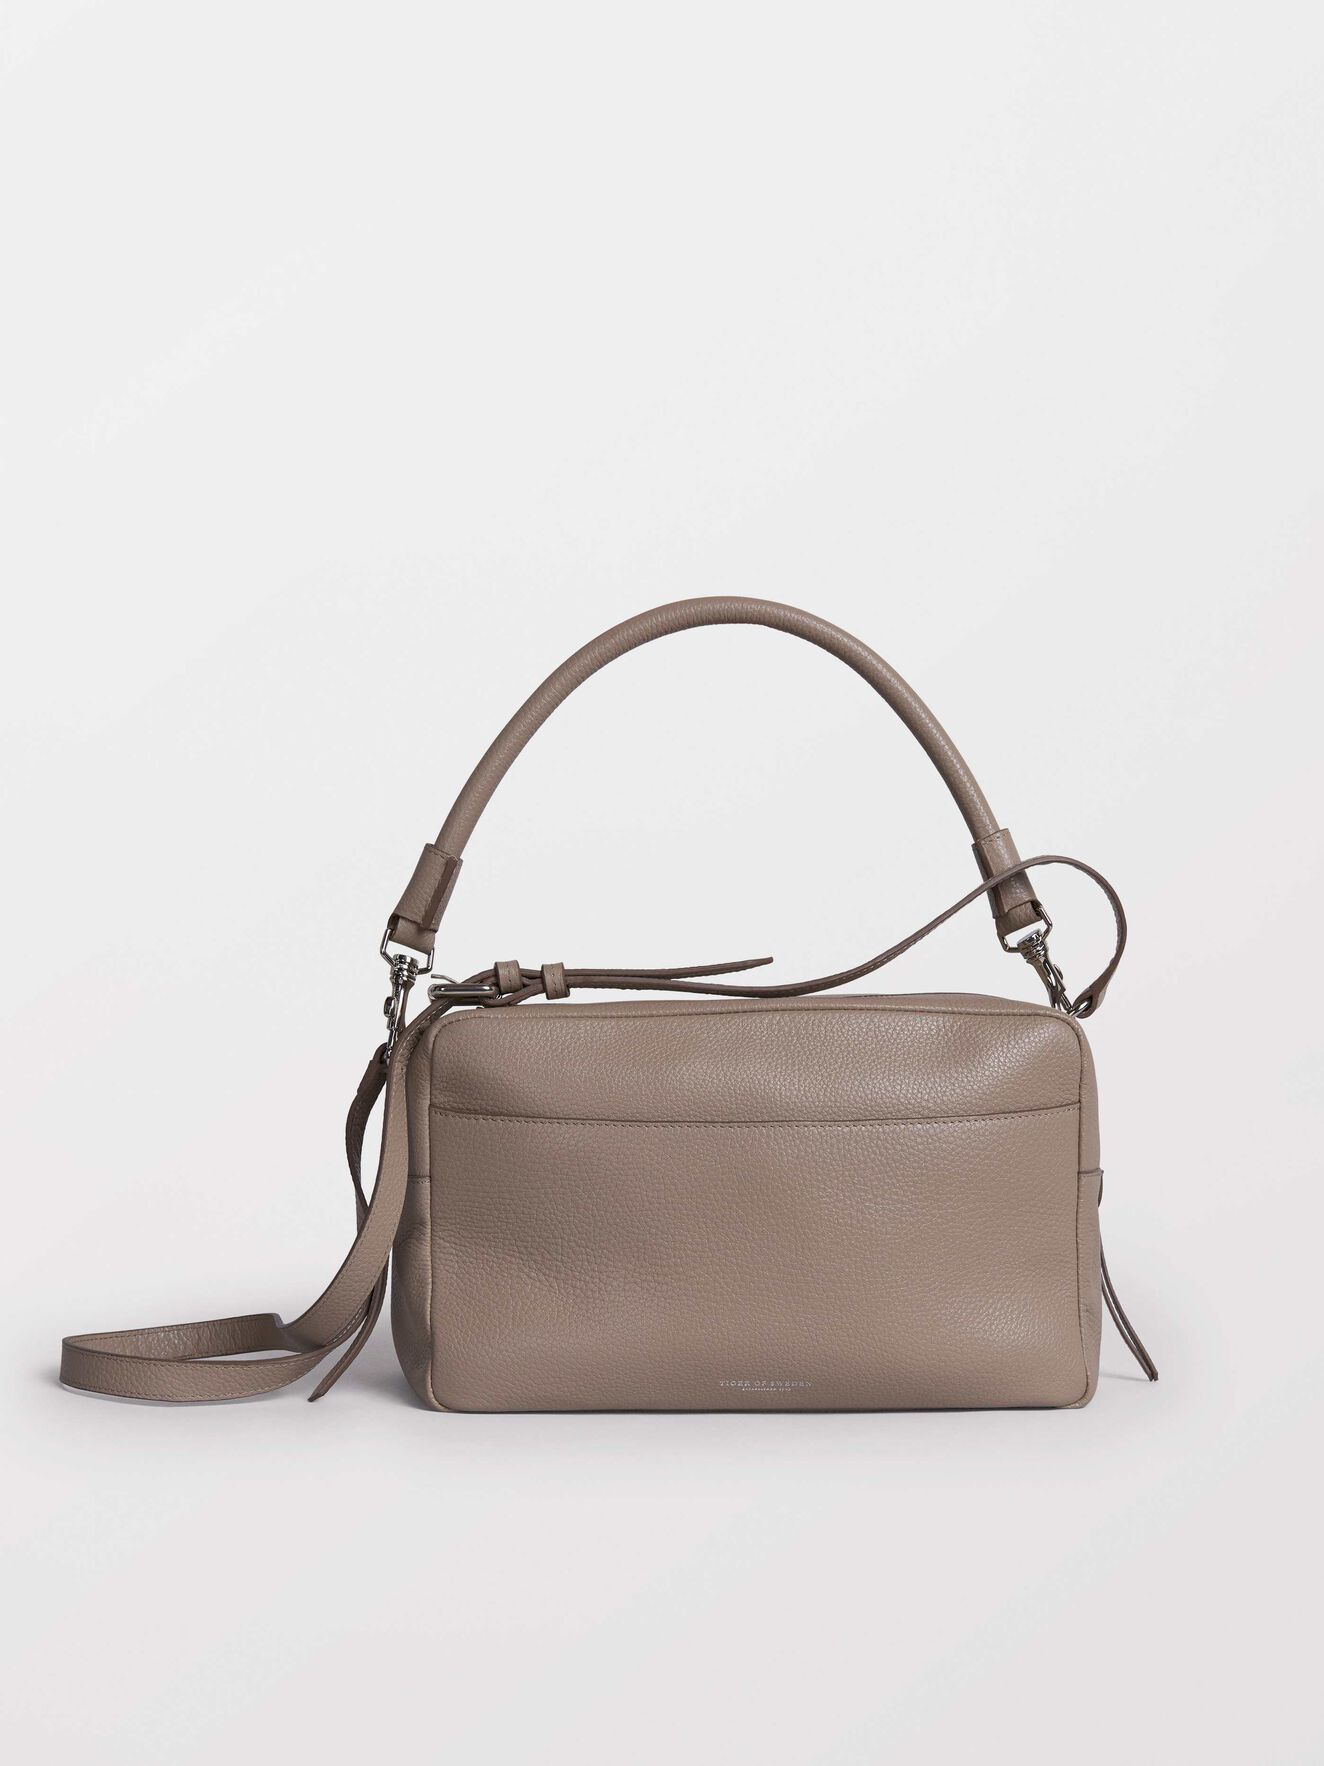 Cubista G Shoulder Bag in Greige Sand from Tiger of Sweden